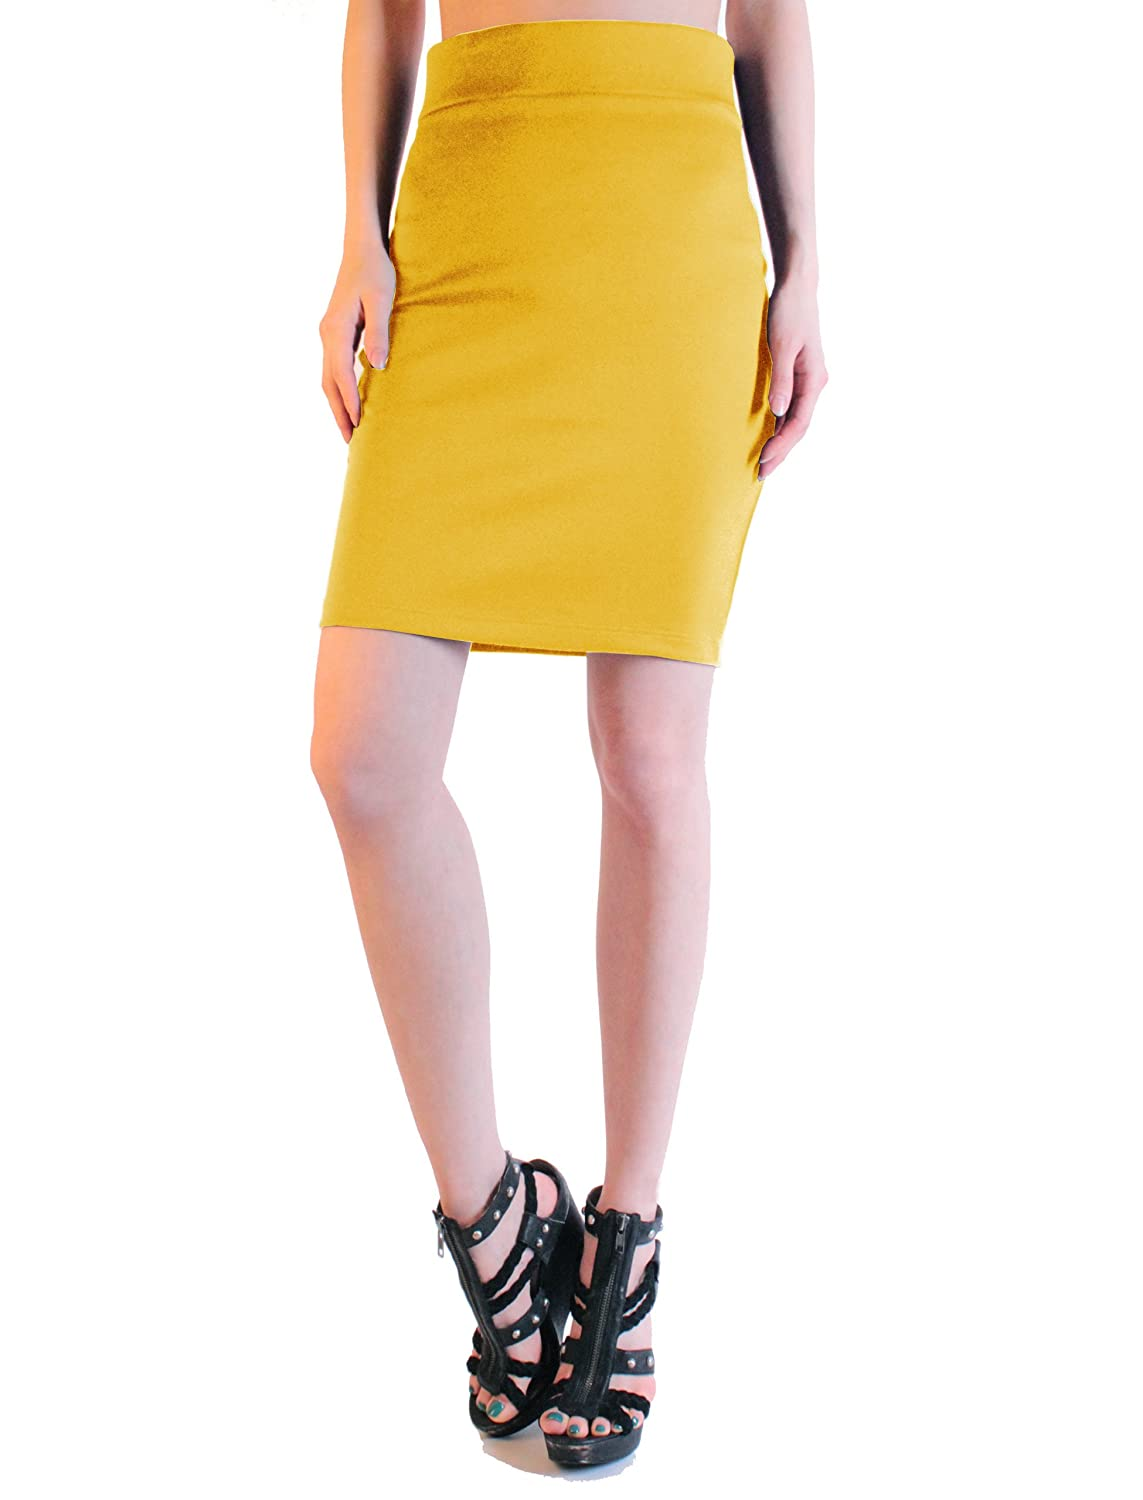 LeggingsQueen High Waist Stretch Basic Pencil Mini Skirt